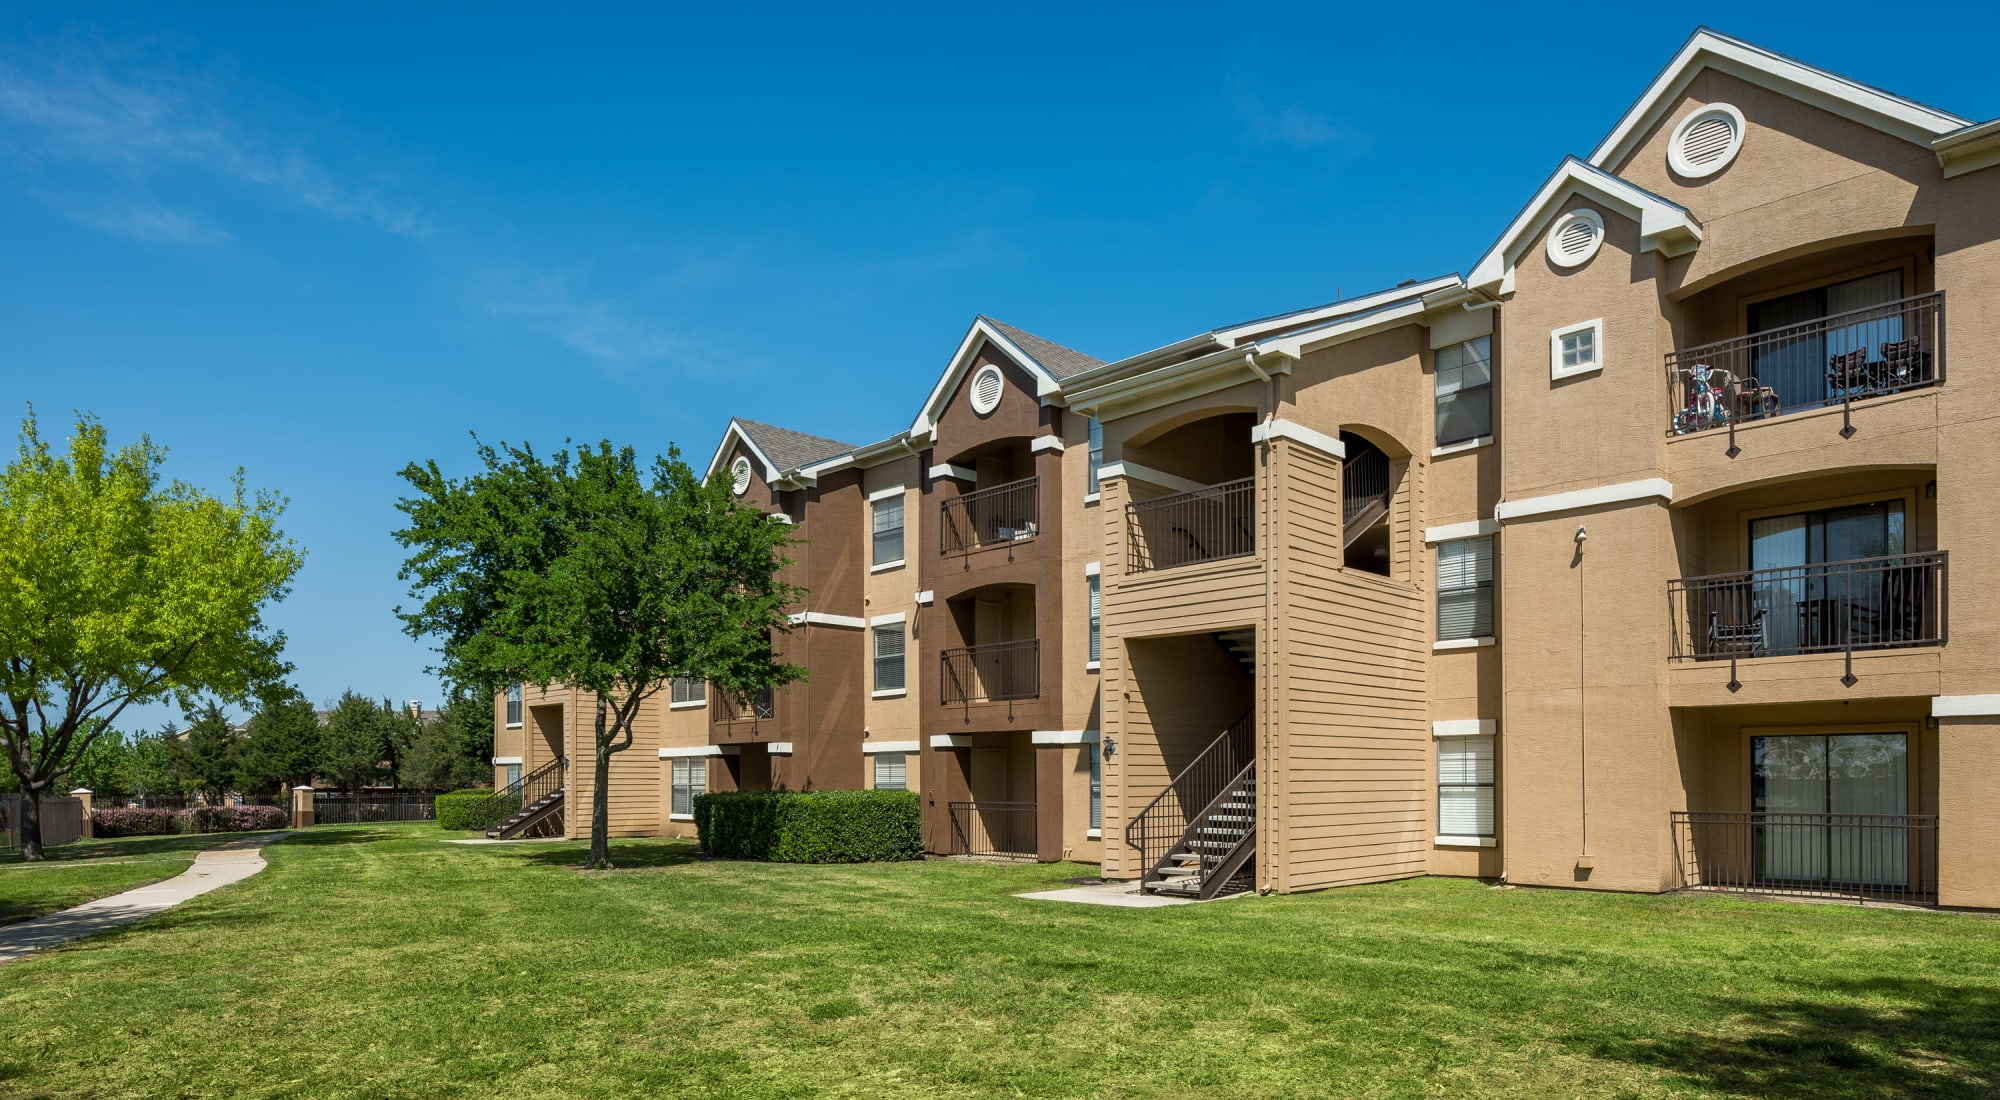 Pet-friendly apartments at Arbrook Park Apartment Homes in Arlington, Texas